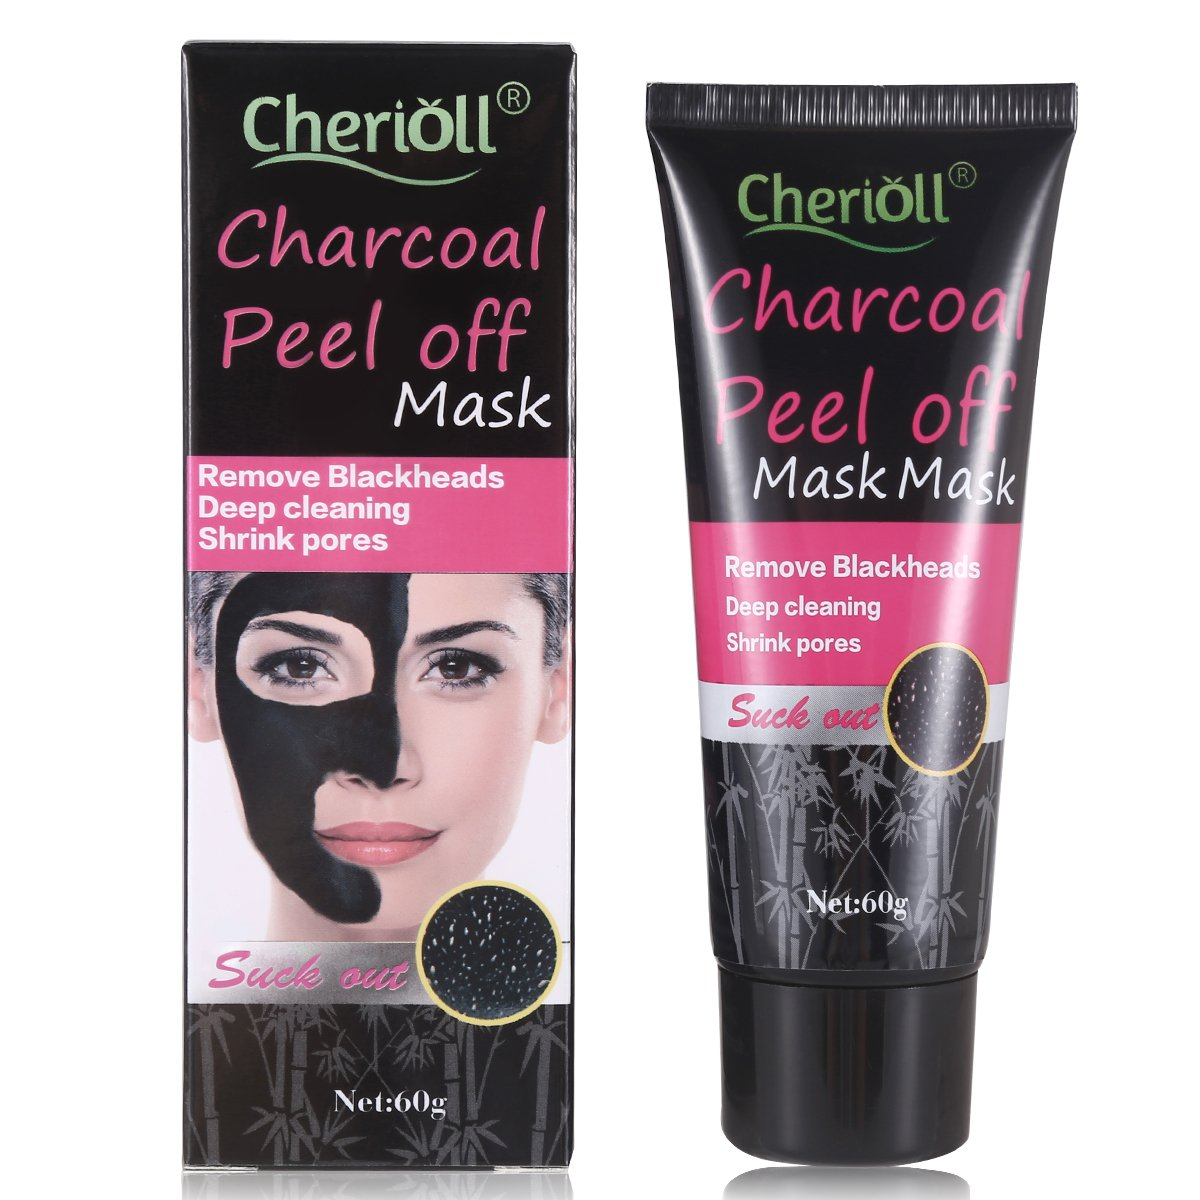 Blackhead Remover Mask,Black Mask,Bamboo Charcoal Blackhead Peel Off Mask ,Deep Cleansing Mask,Purifying Acne Blackhead Mask cherioll